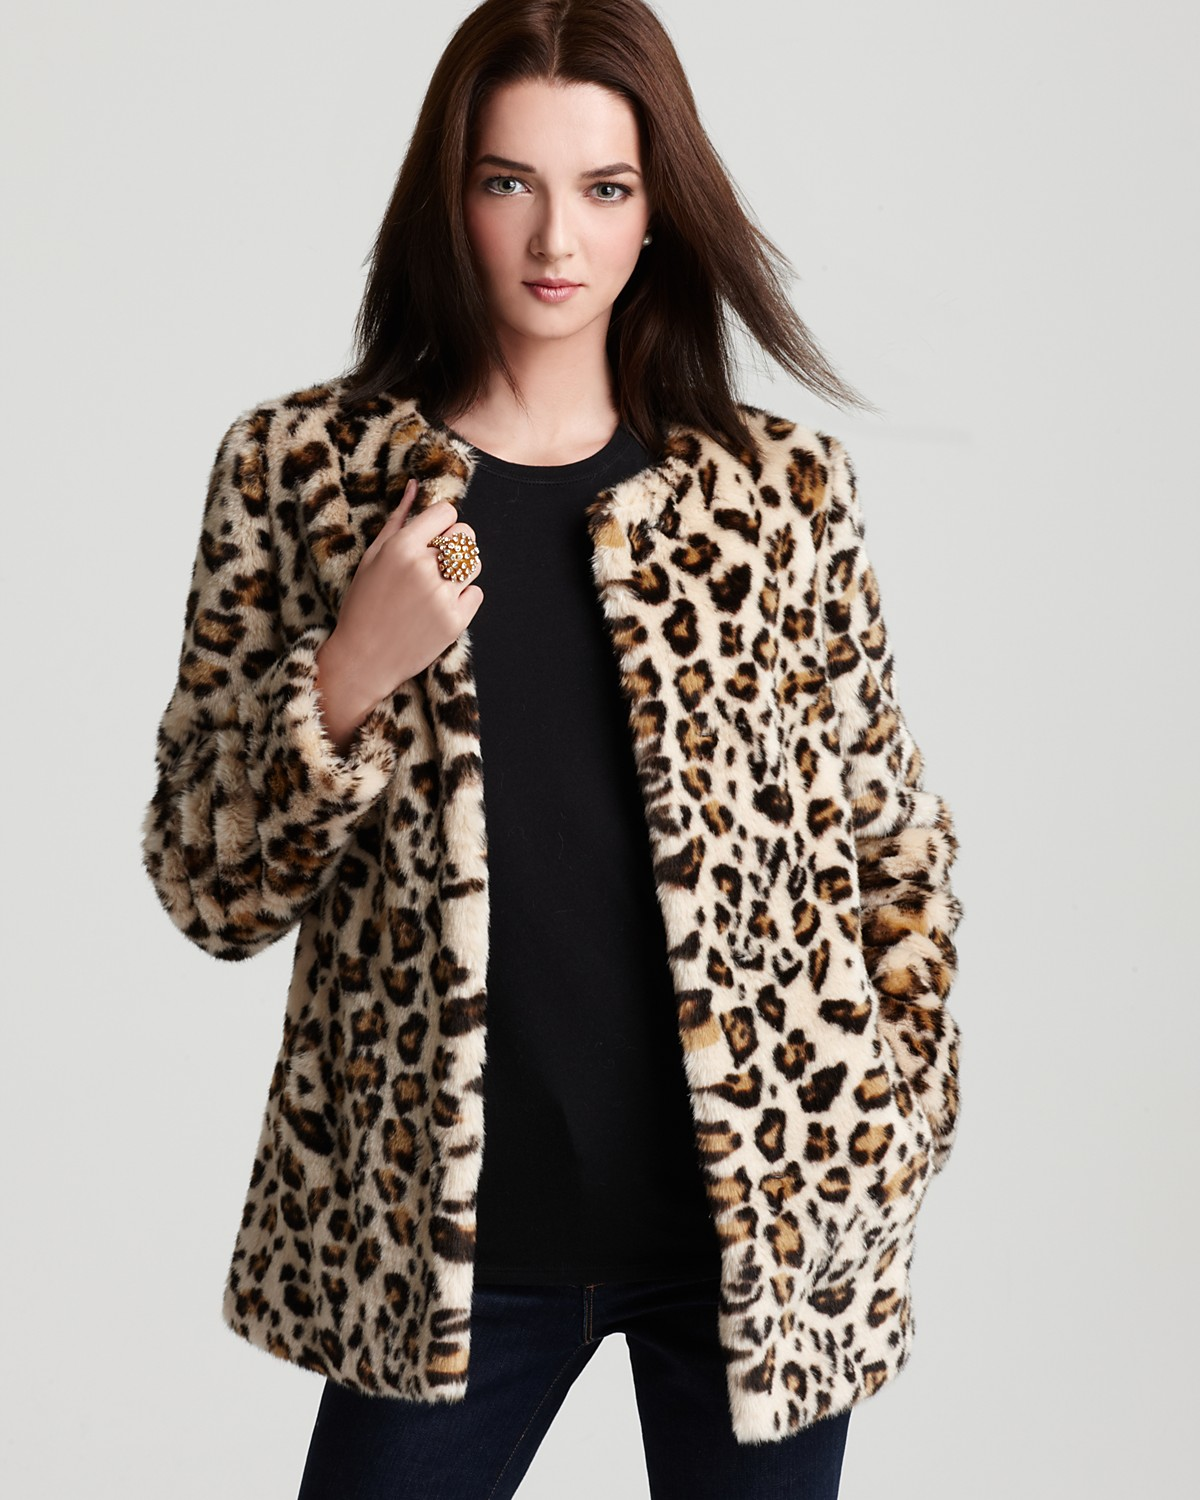 Street by Cynthia Vincent Leopard Faux Fur Coat - Coats & Jackets ...